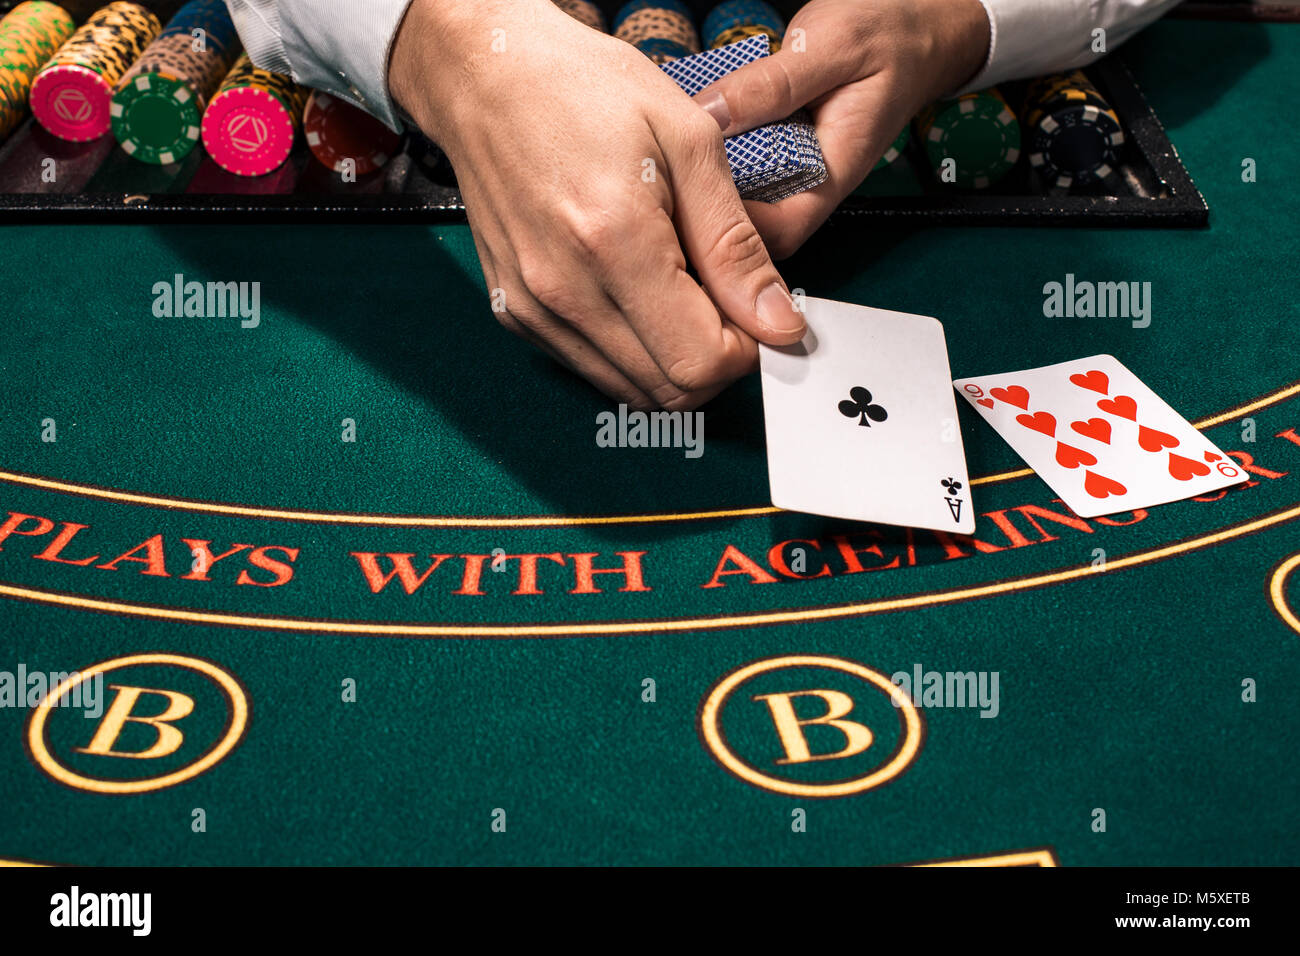 Close up of holdem dealer with playing cards and chips on green table - Stock Image